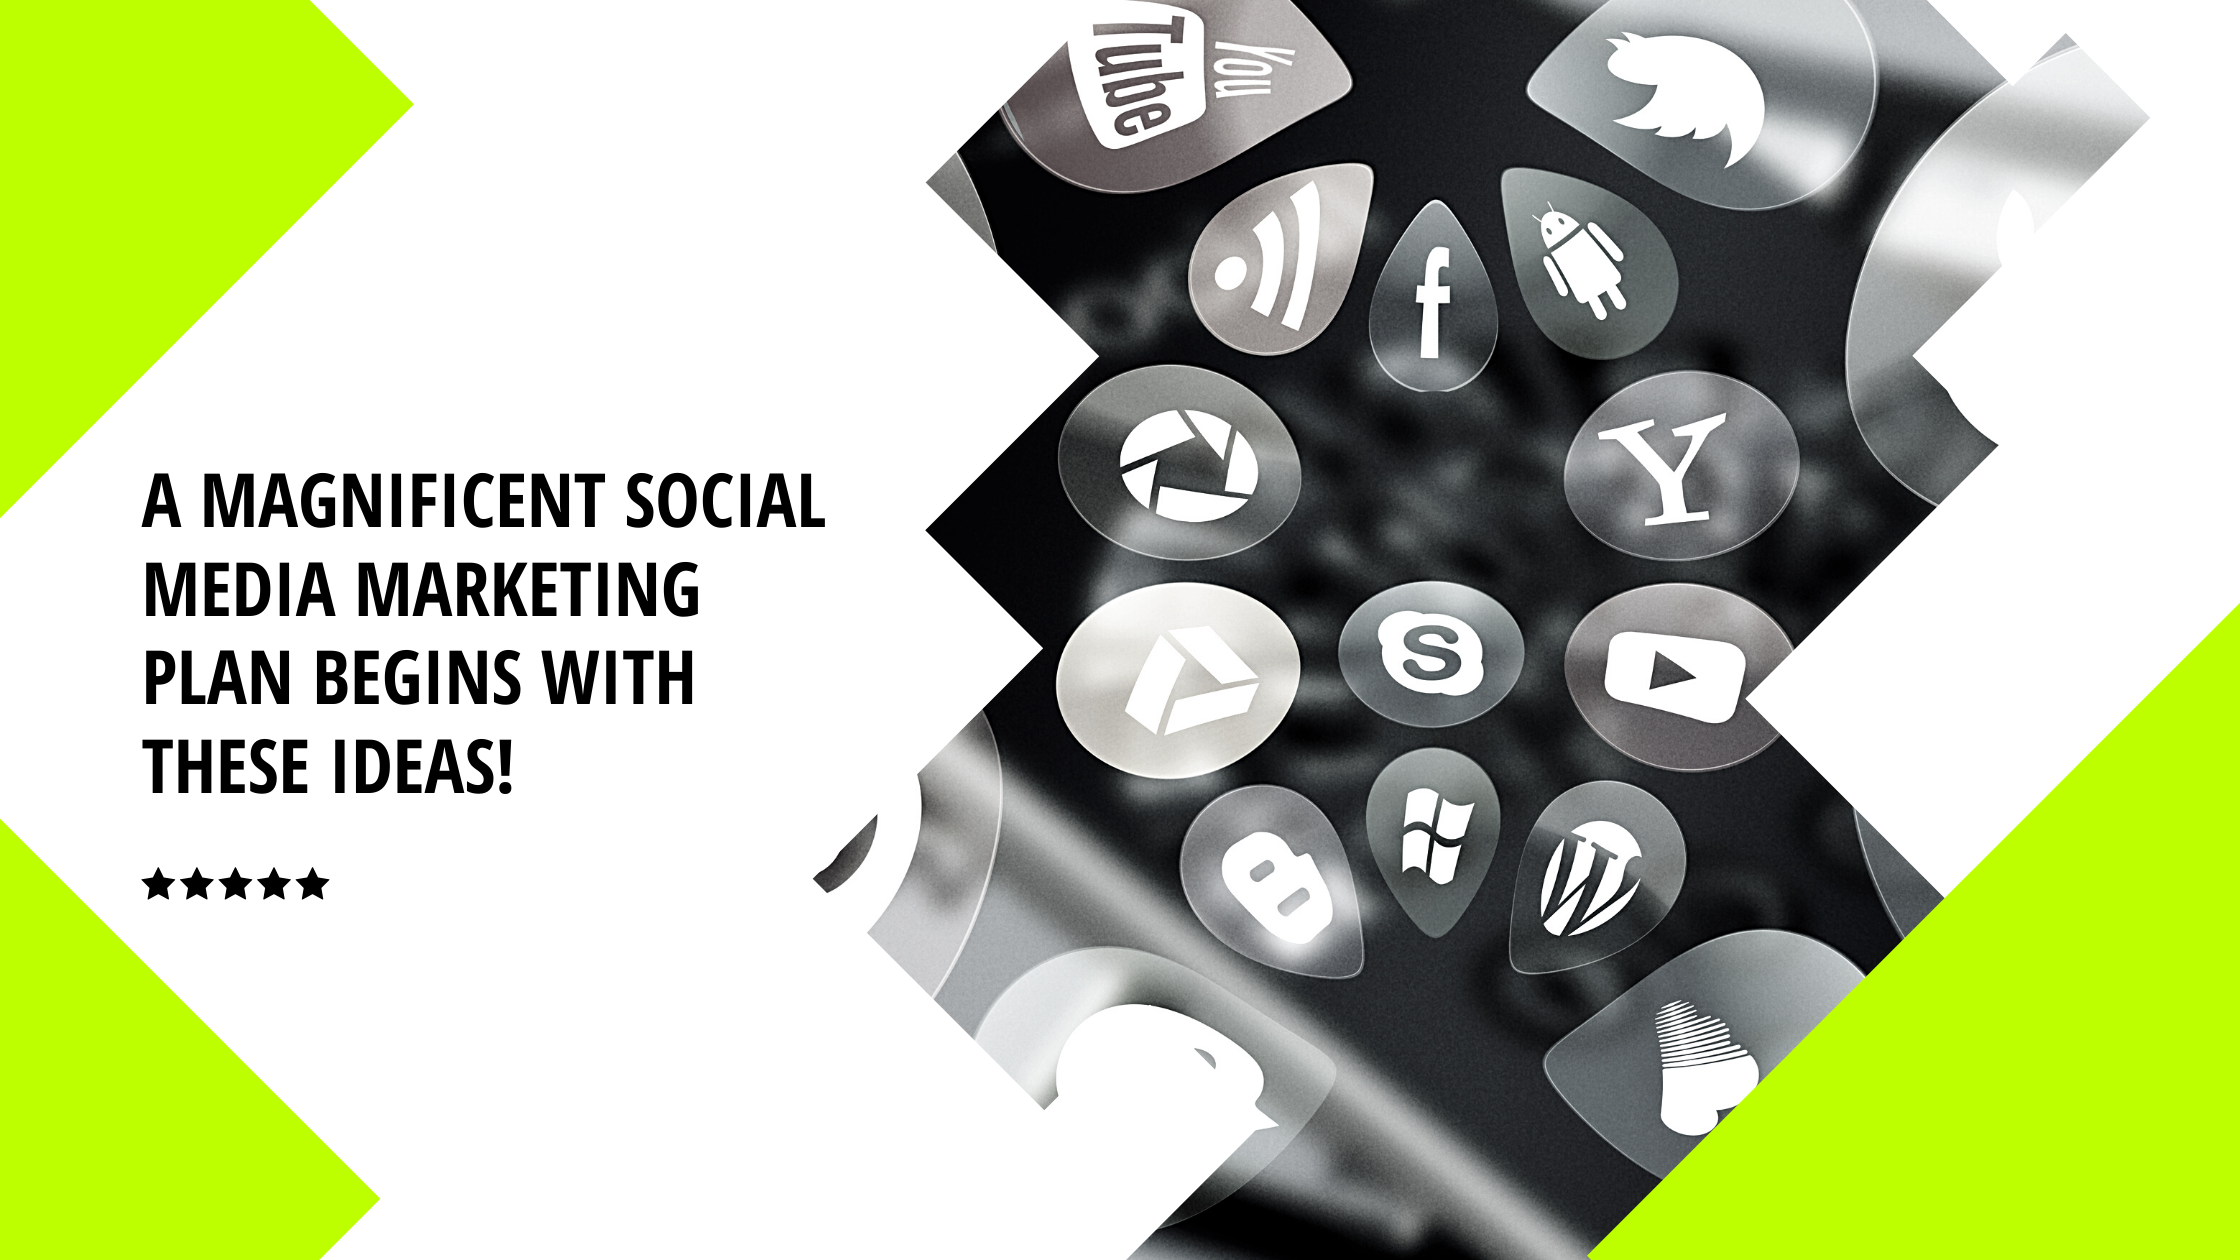 A Magnificent Social Media Marketing Plan Begins With These Ideas